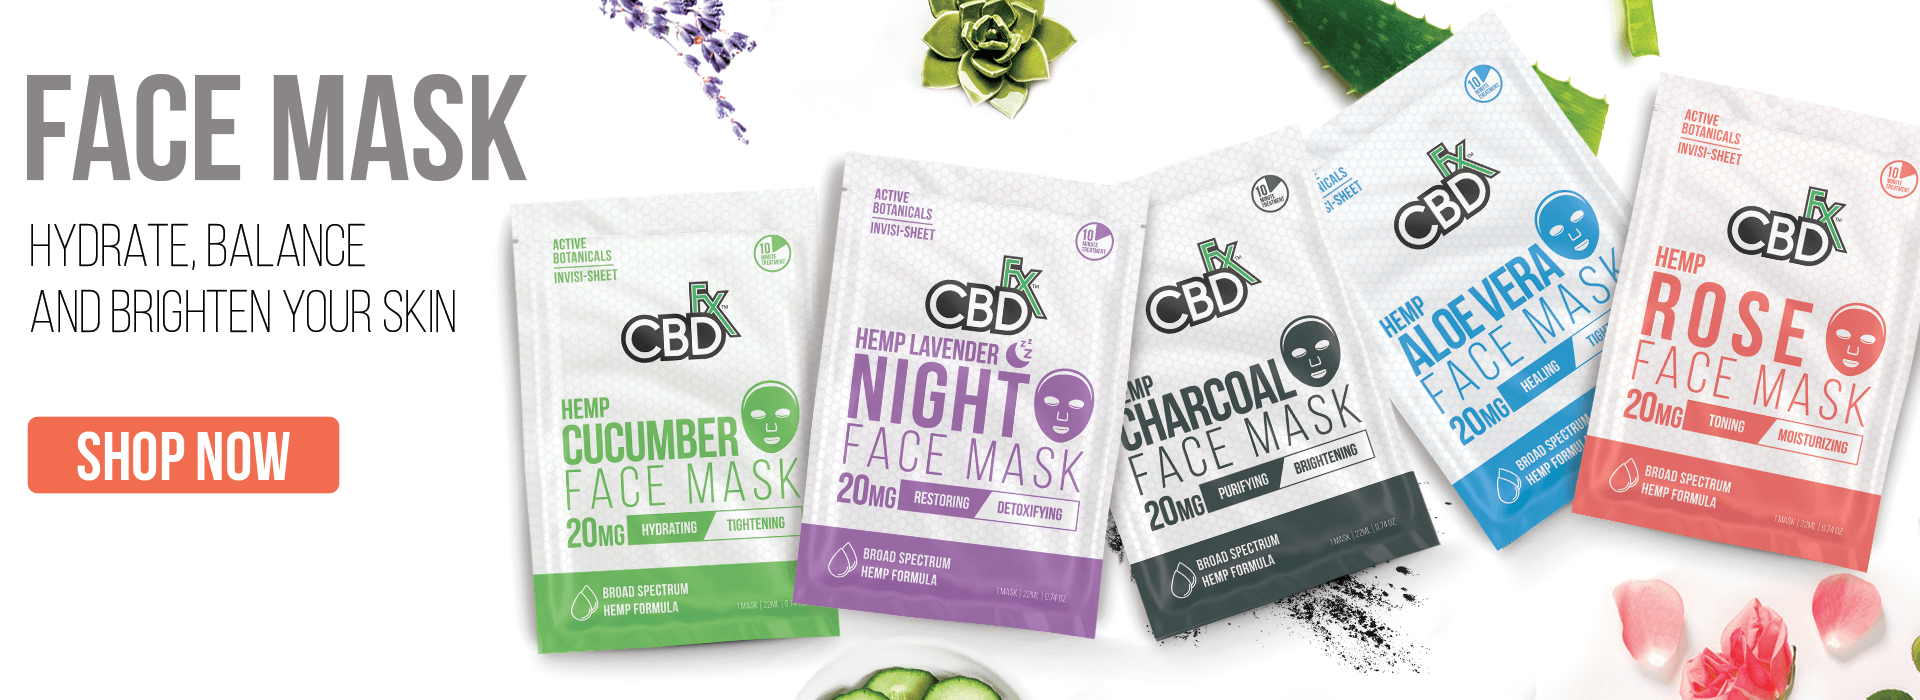 CBDfx CBD Hemp Face Mask Sheet Mask Beauty SkinCare Botanical